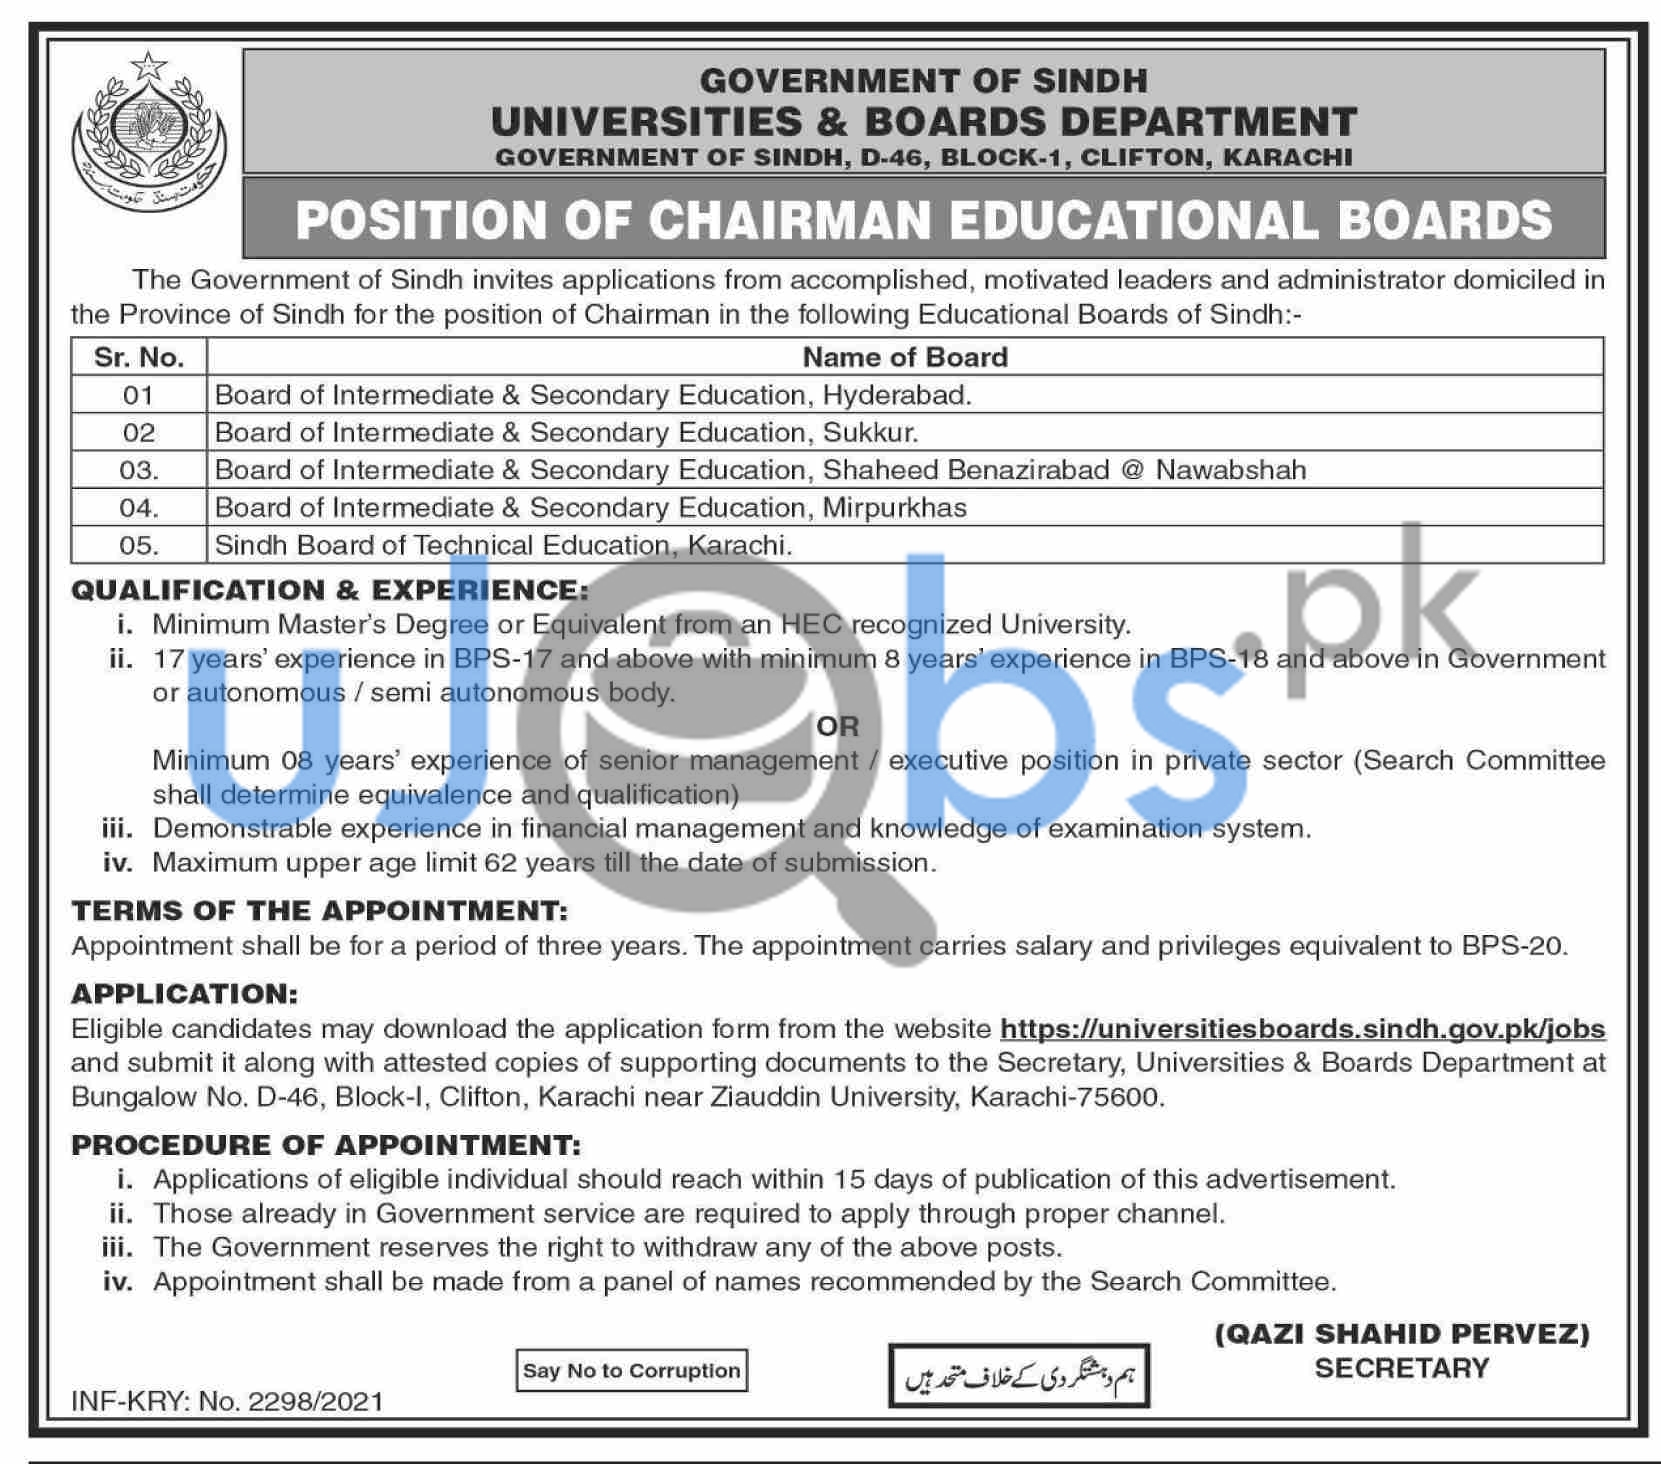 Chairman Educational Boards Jobs in Government Universities of Karachi 2021